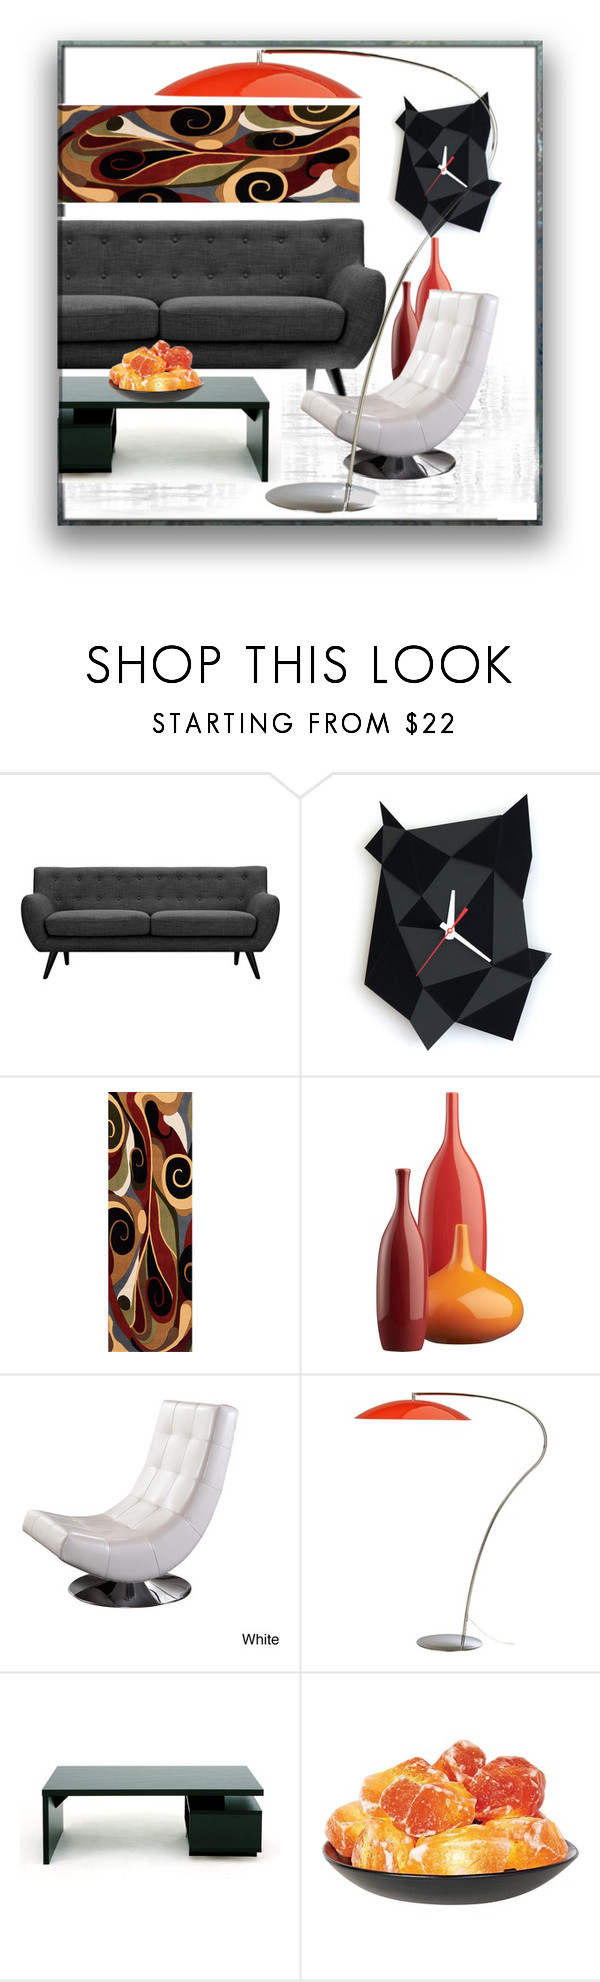 Fire and coal decor under